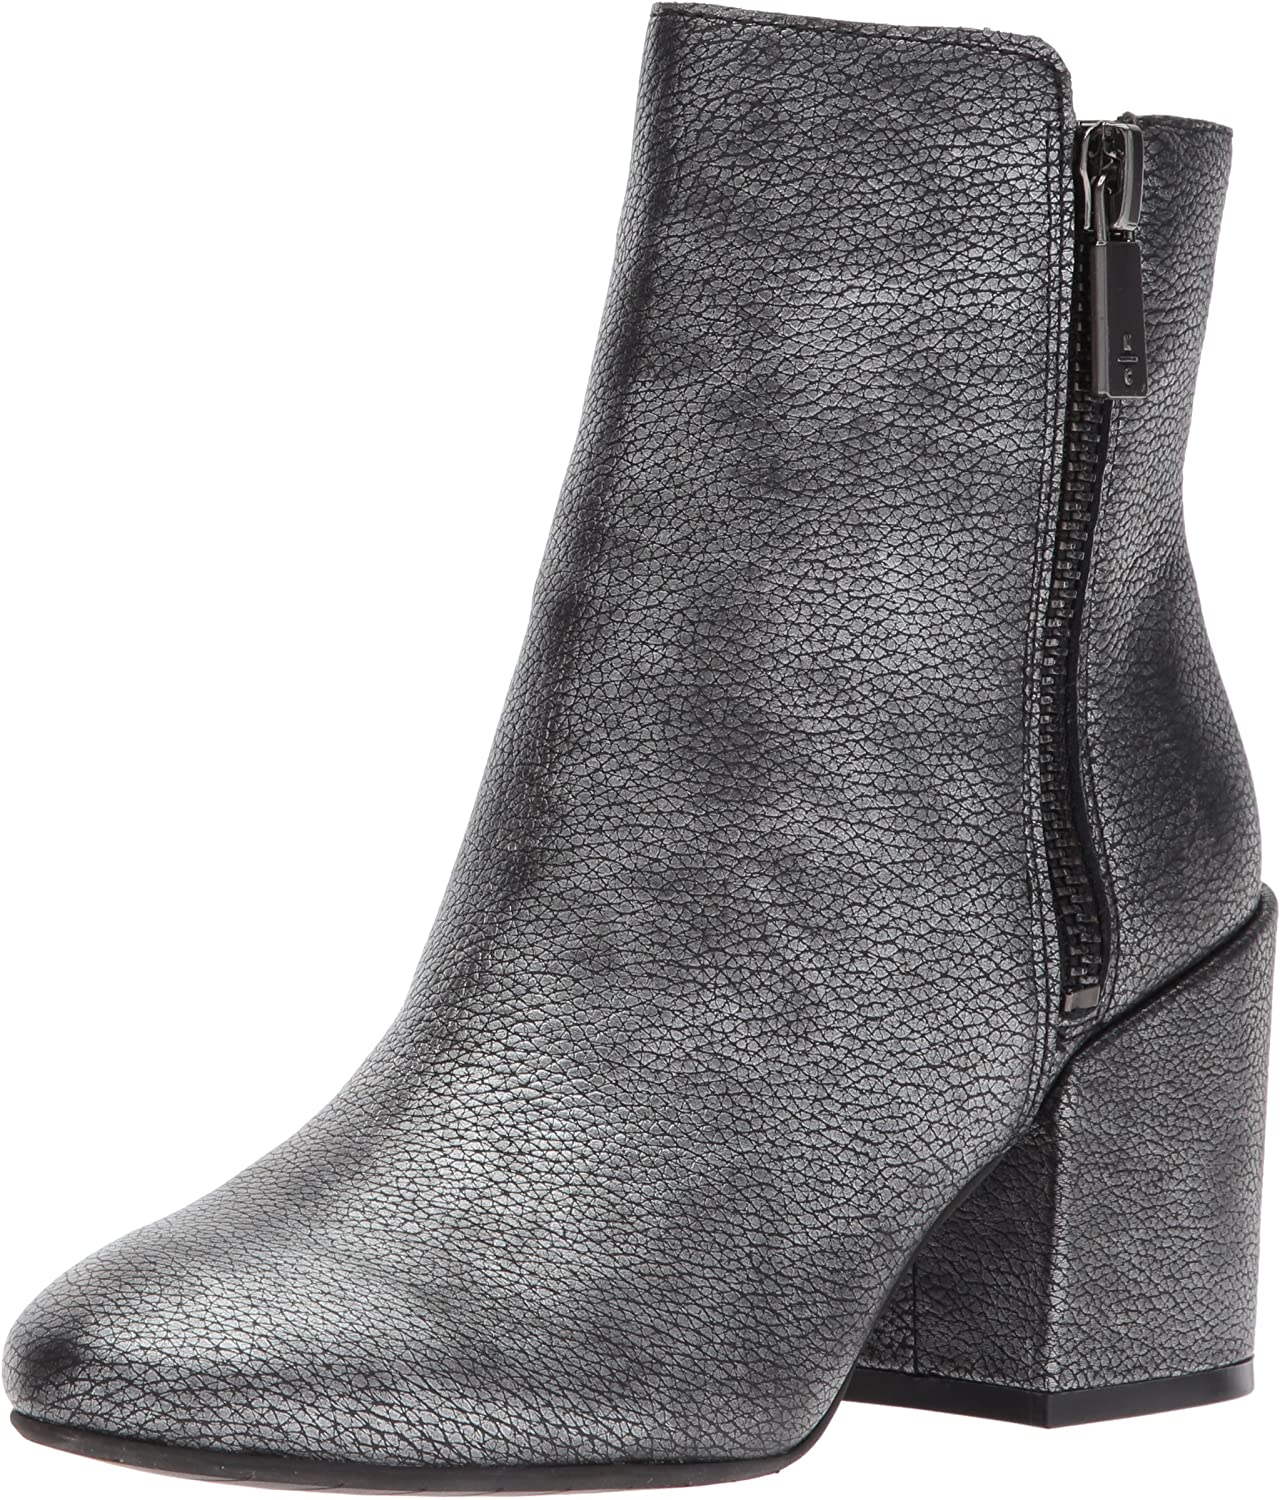 Kenneth Cole New York Womens Rima Bootie with Double Zip Block Heel Leather Boot